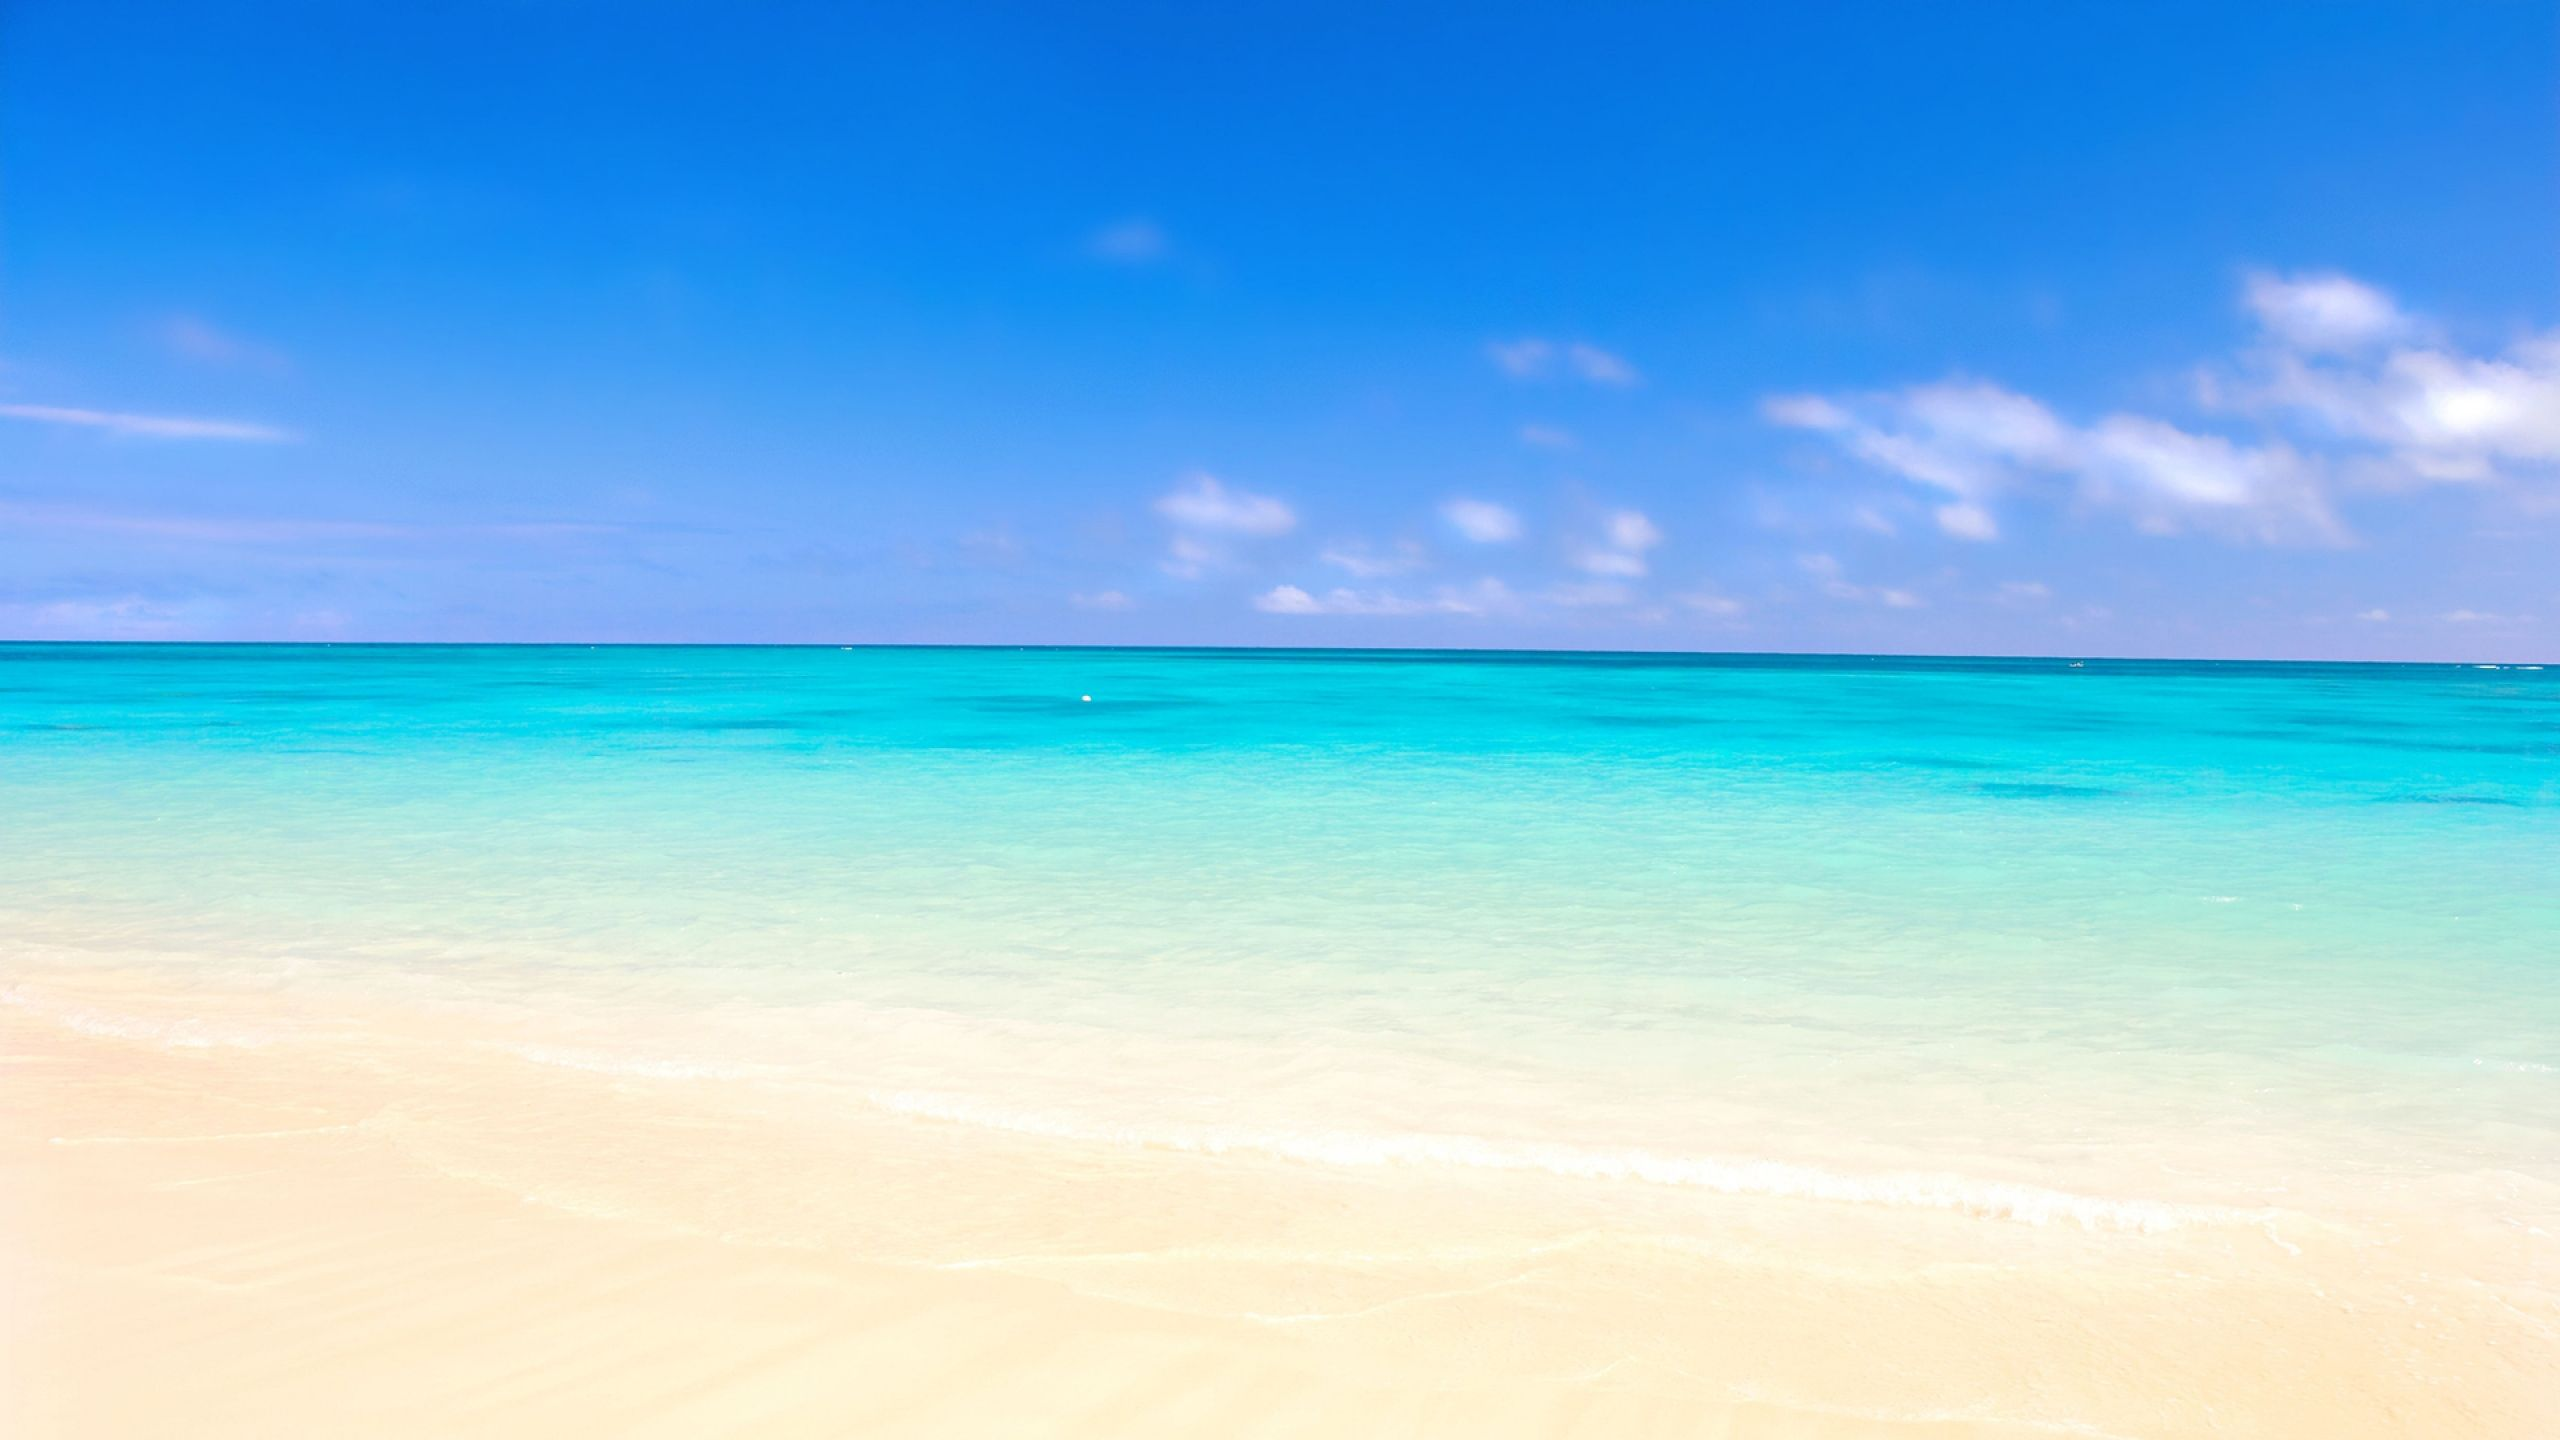 Mac Wallpapers HD » Marvelous Beaches HD Apple Mac Desktop ...